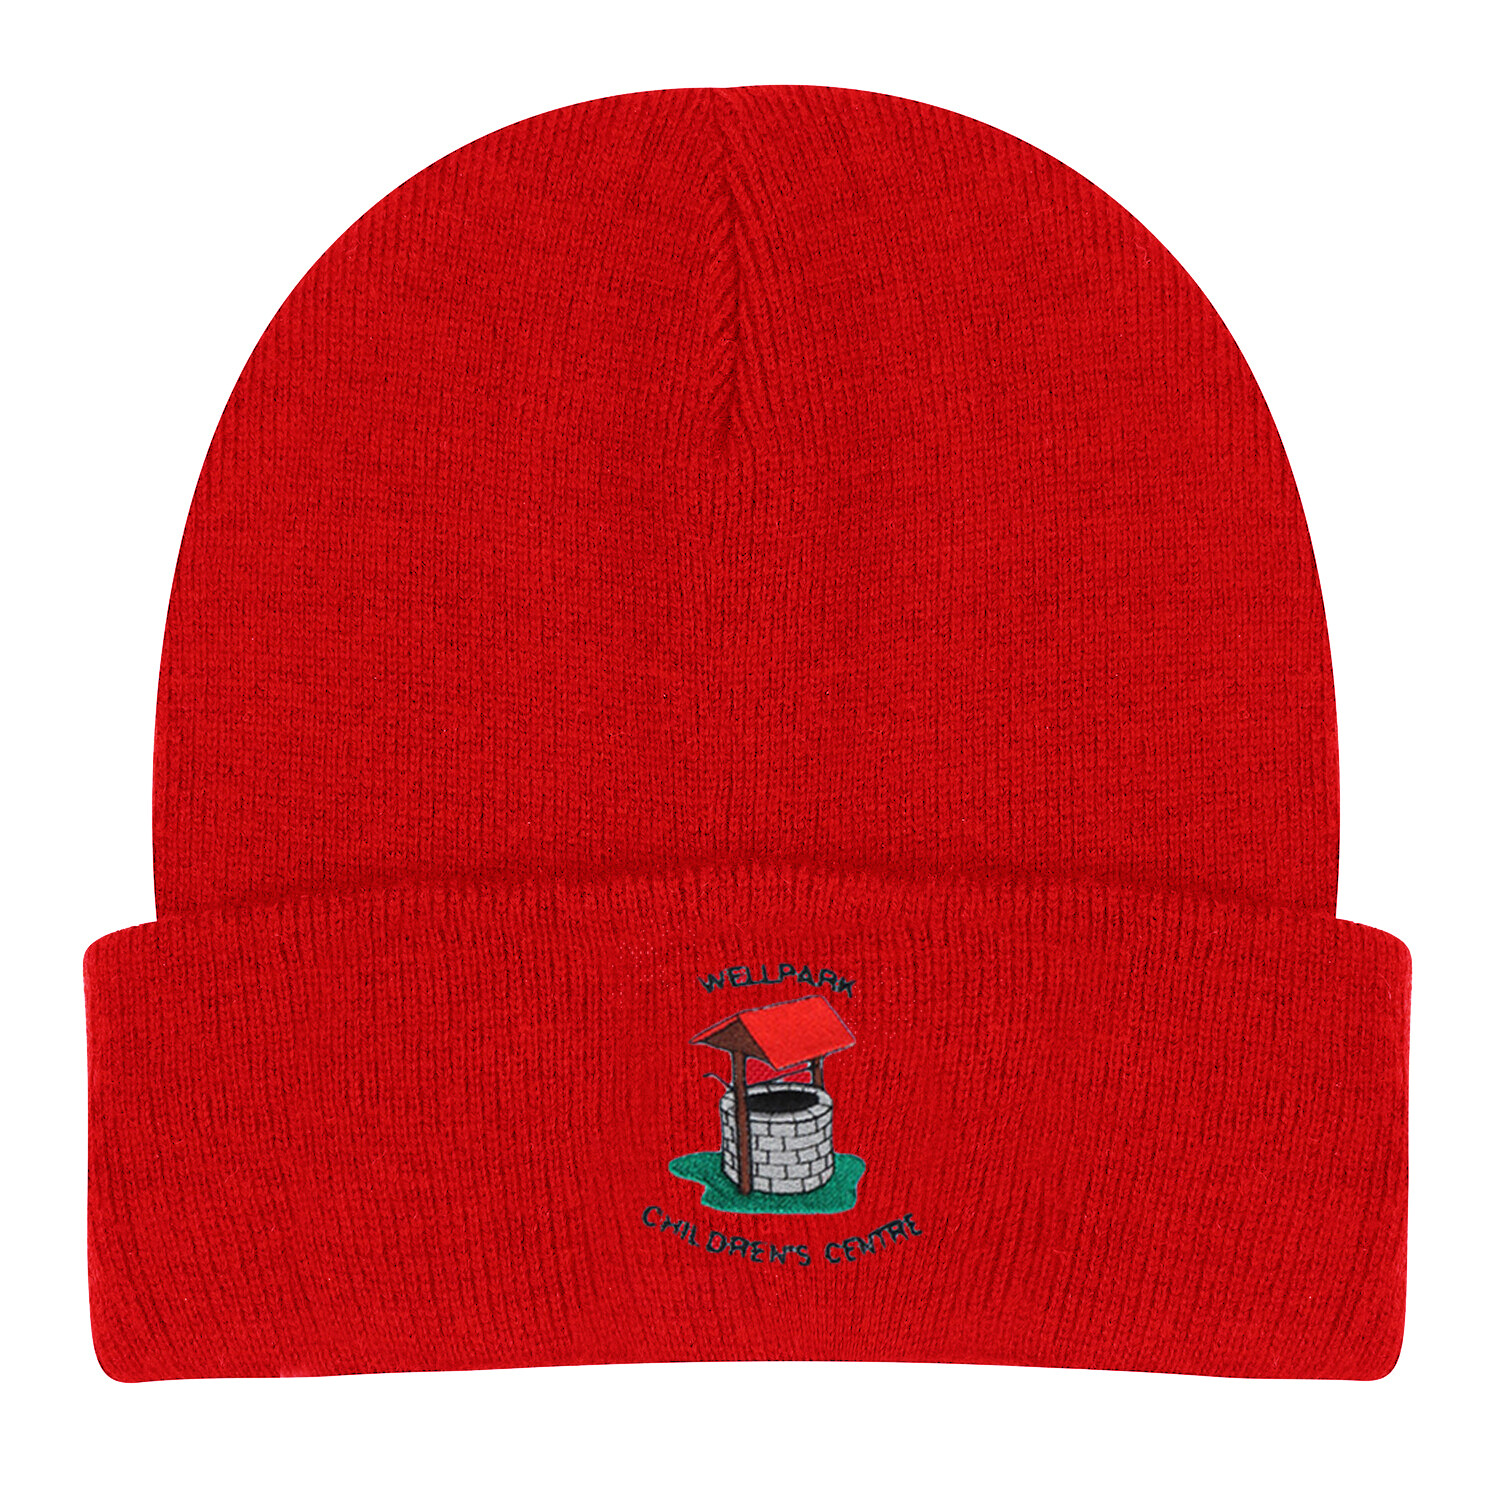 Wellpark Childrens Centre Wooly Hat